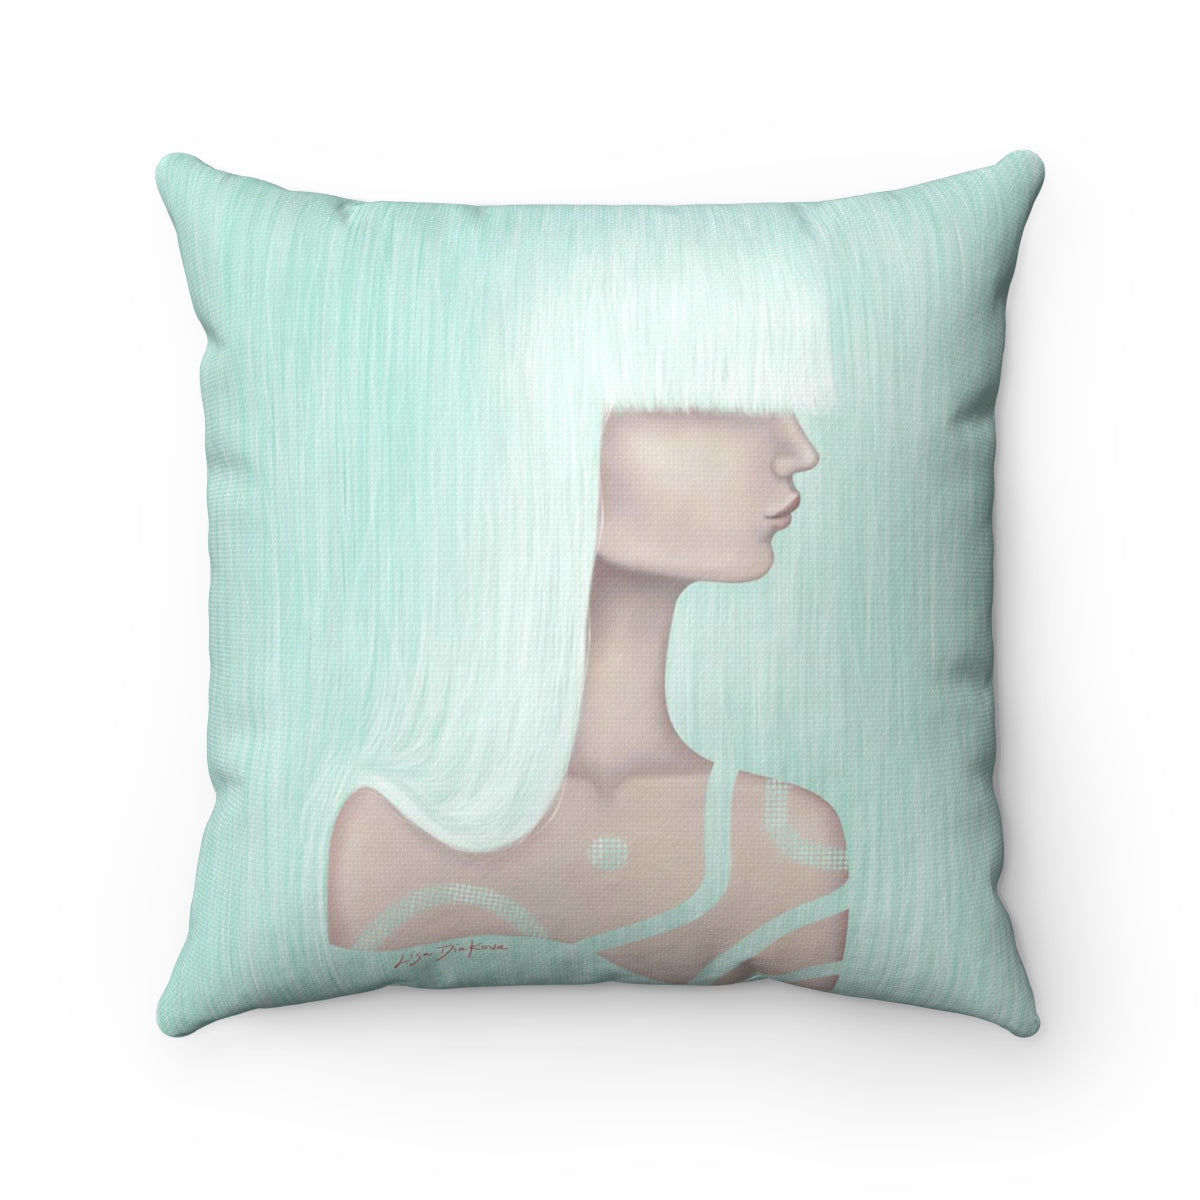 Act One Throw Pillow